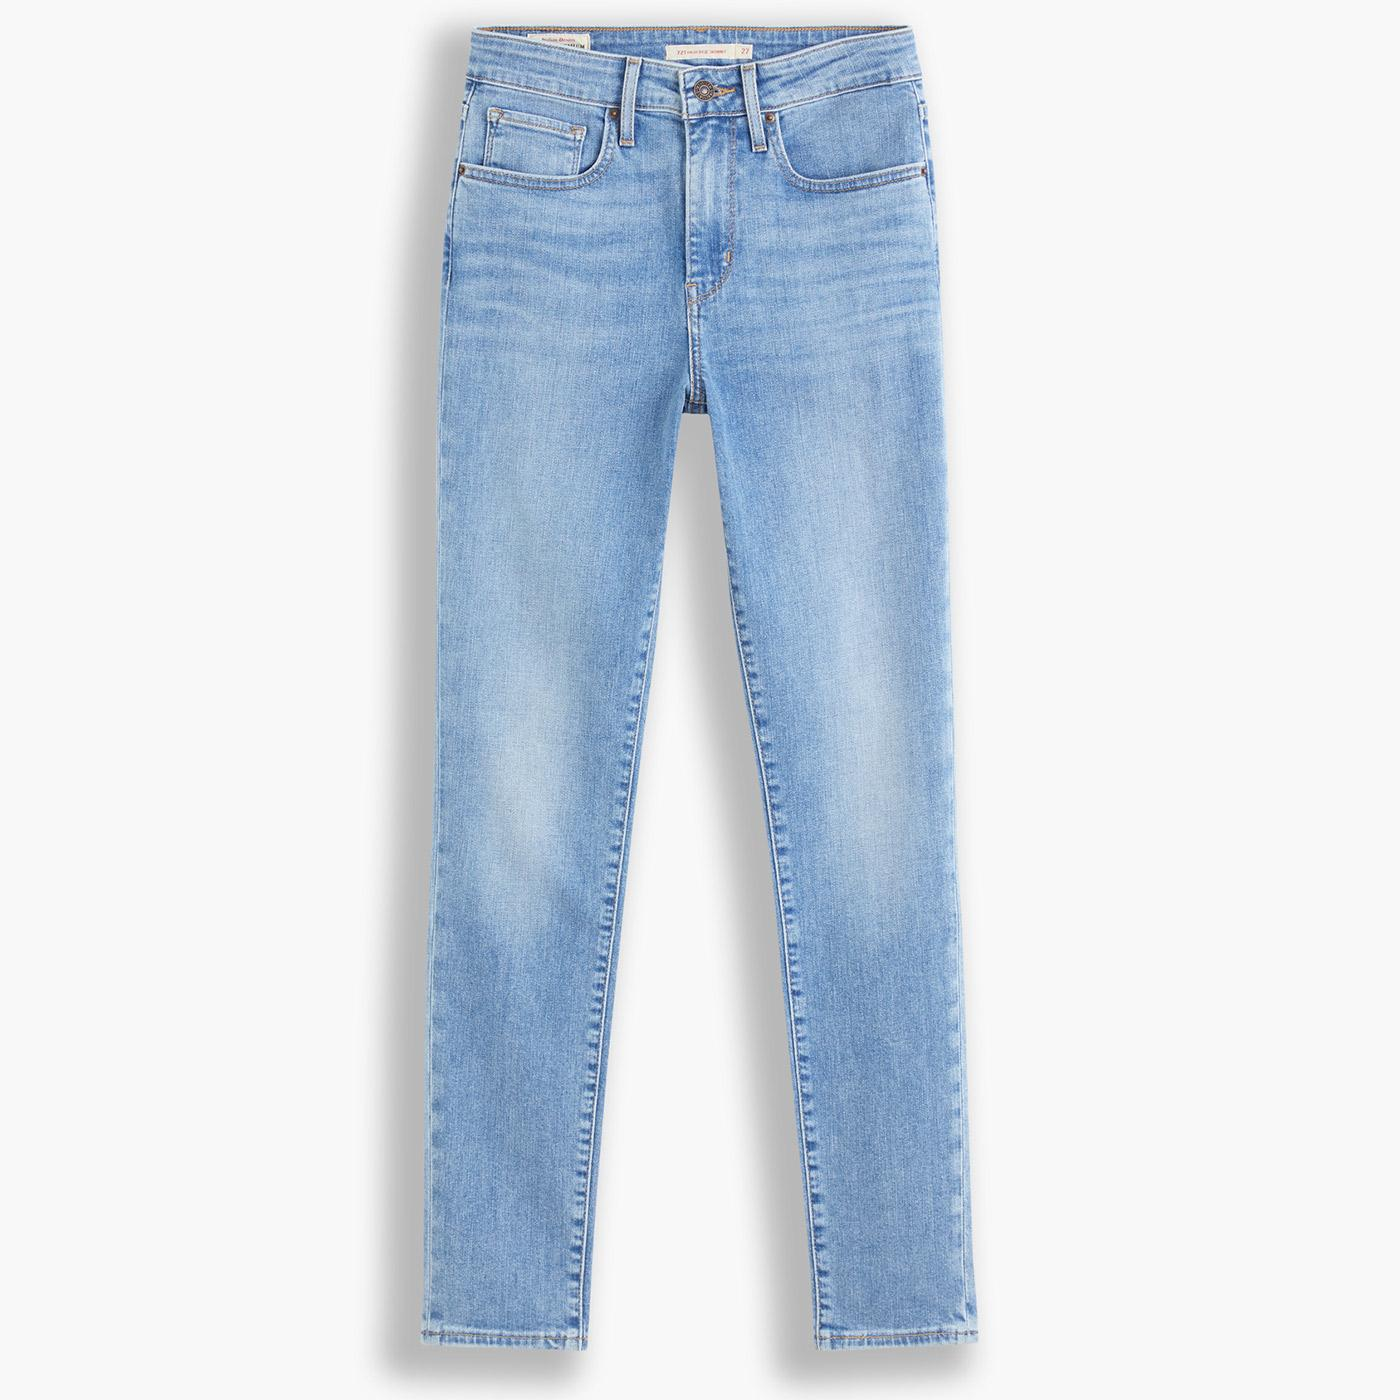 LEVI'S 721 High Rise Skinny Jeans (Don't Be Extra)